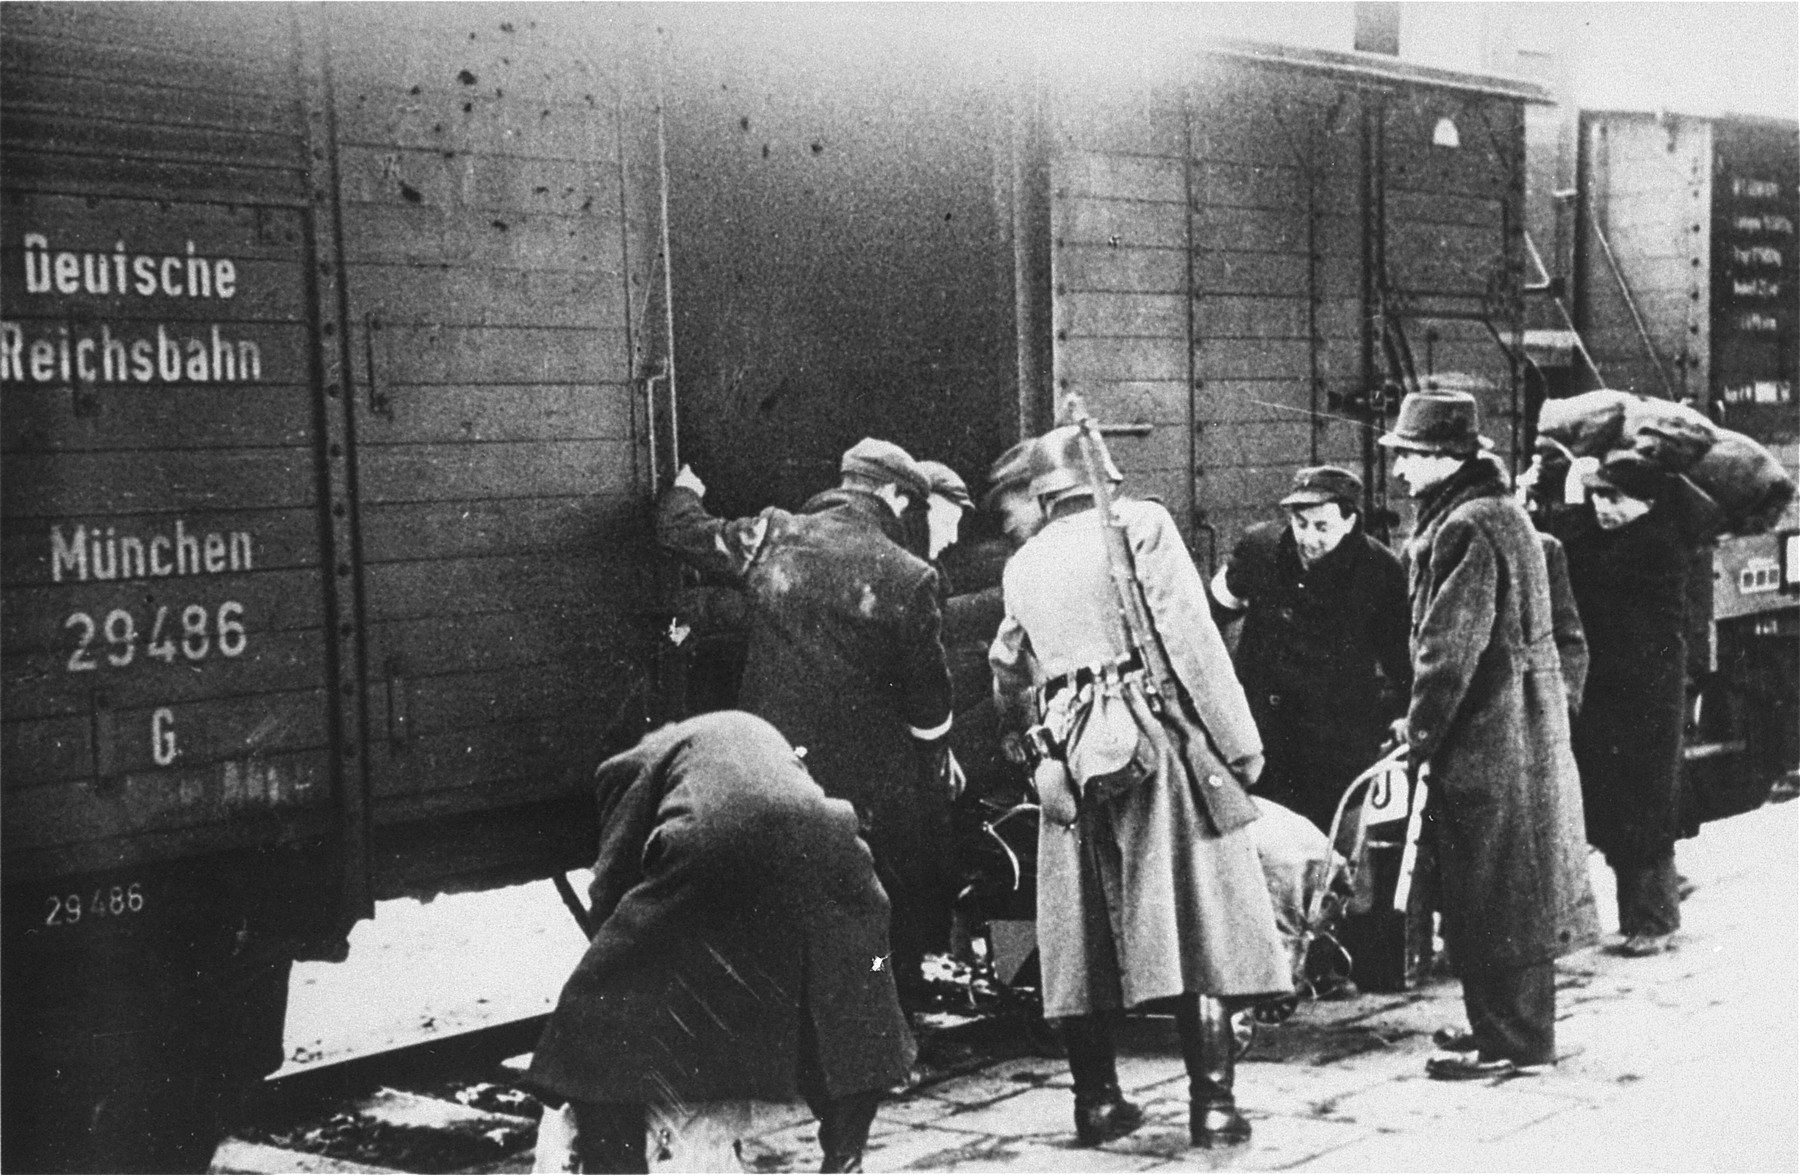 A member of the German SS supervises the boarding of Jews onto trains during a deportation action in the Krakow ghetto.